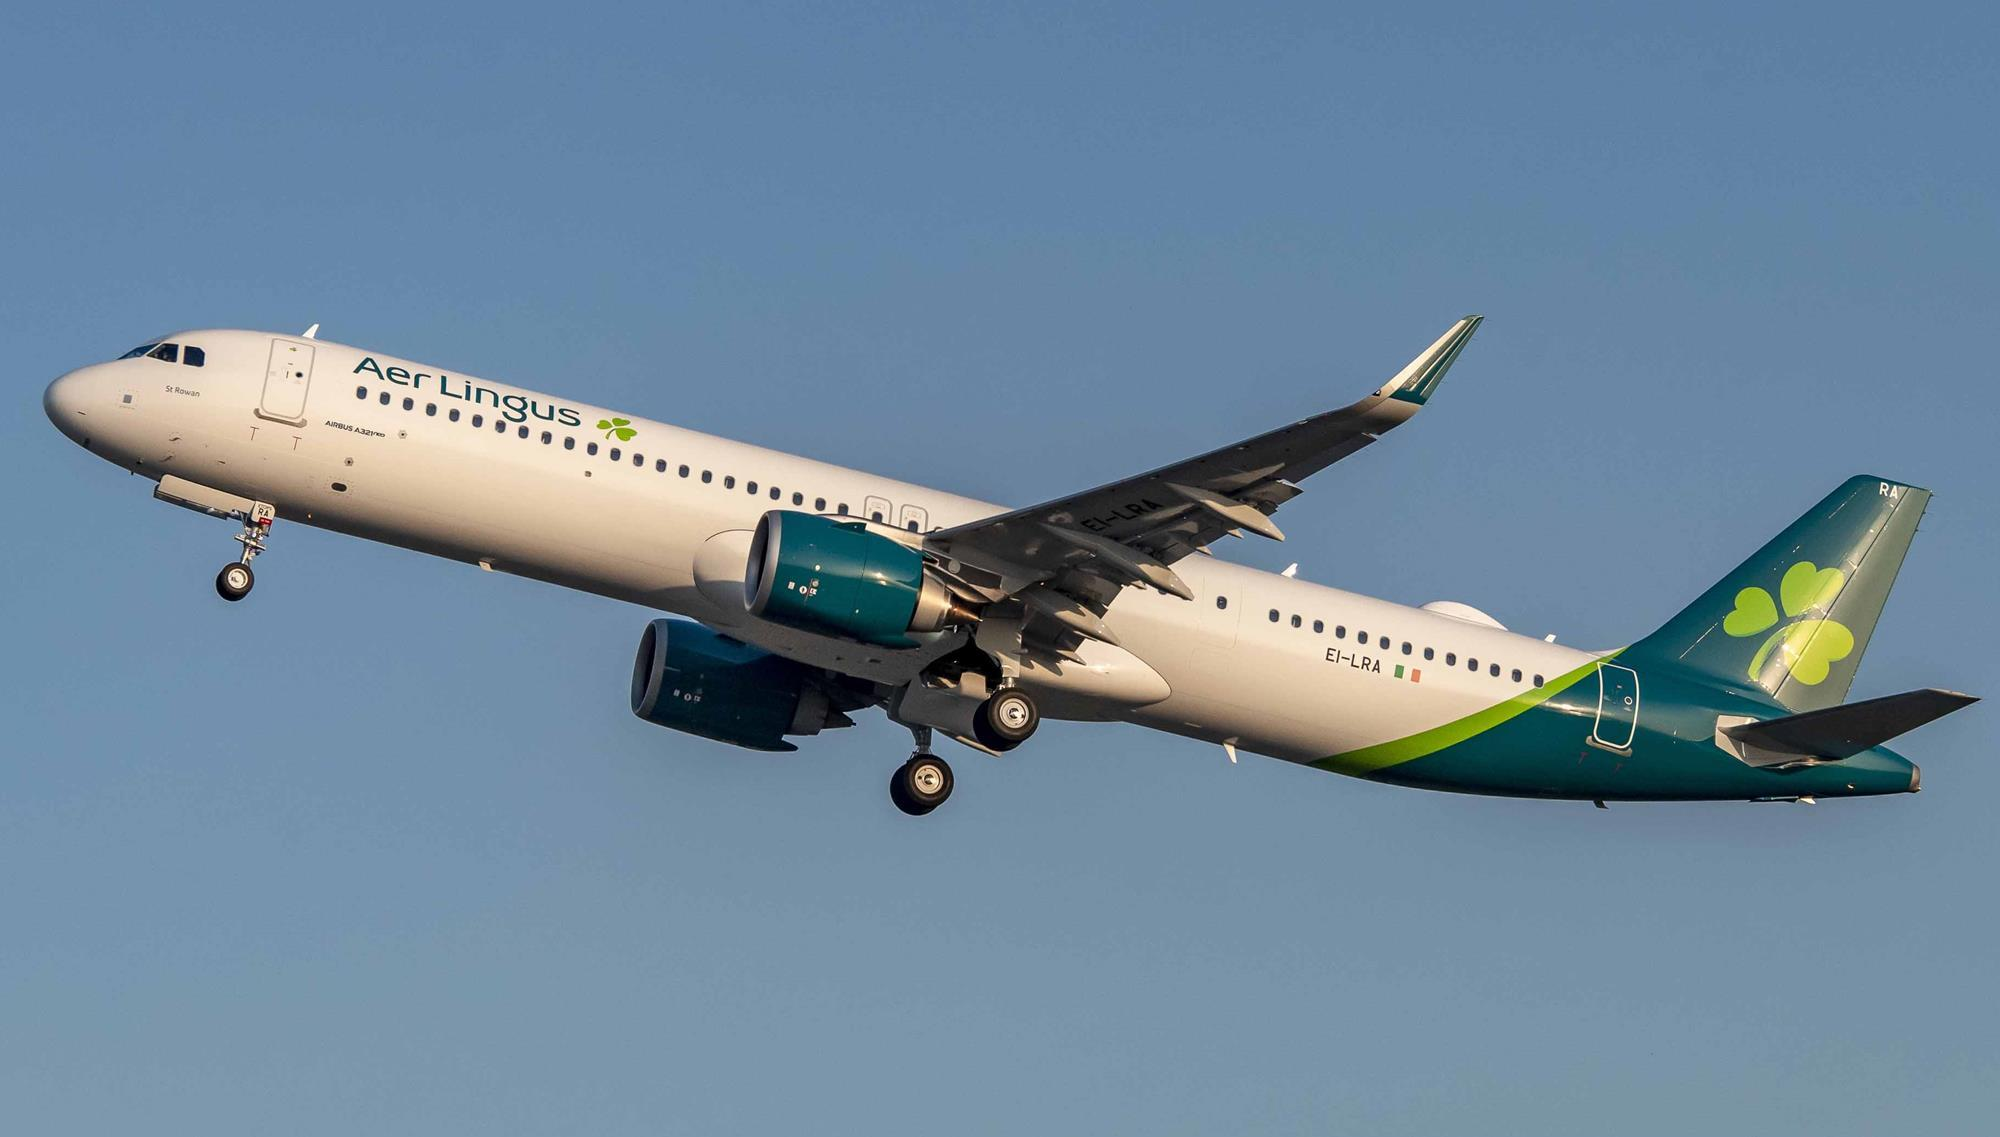 Aer Lingus 'held back' by A321LR delivery delays